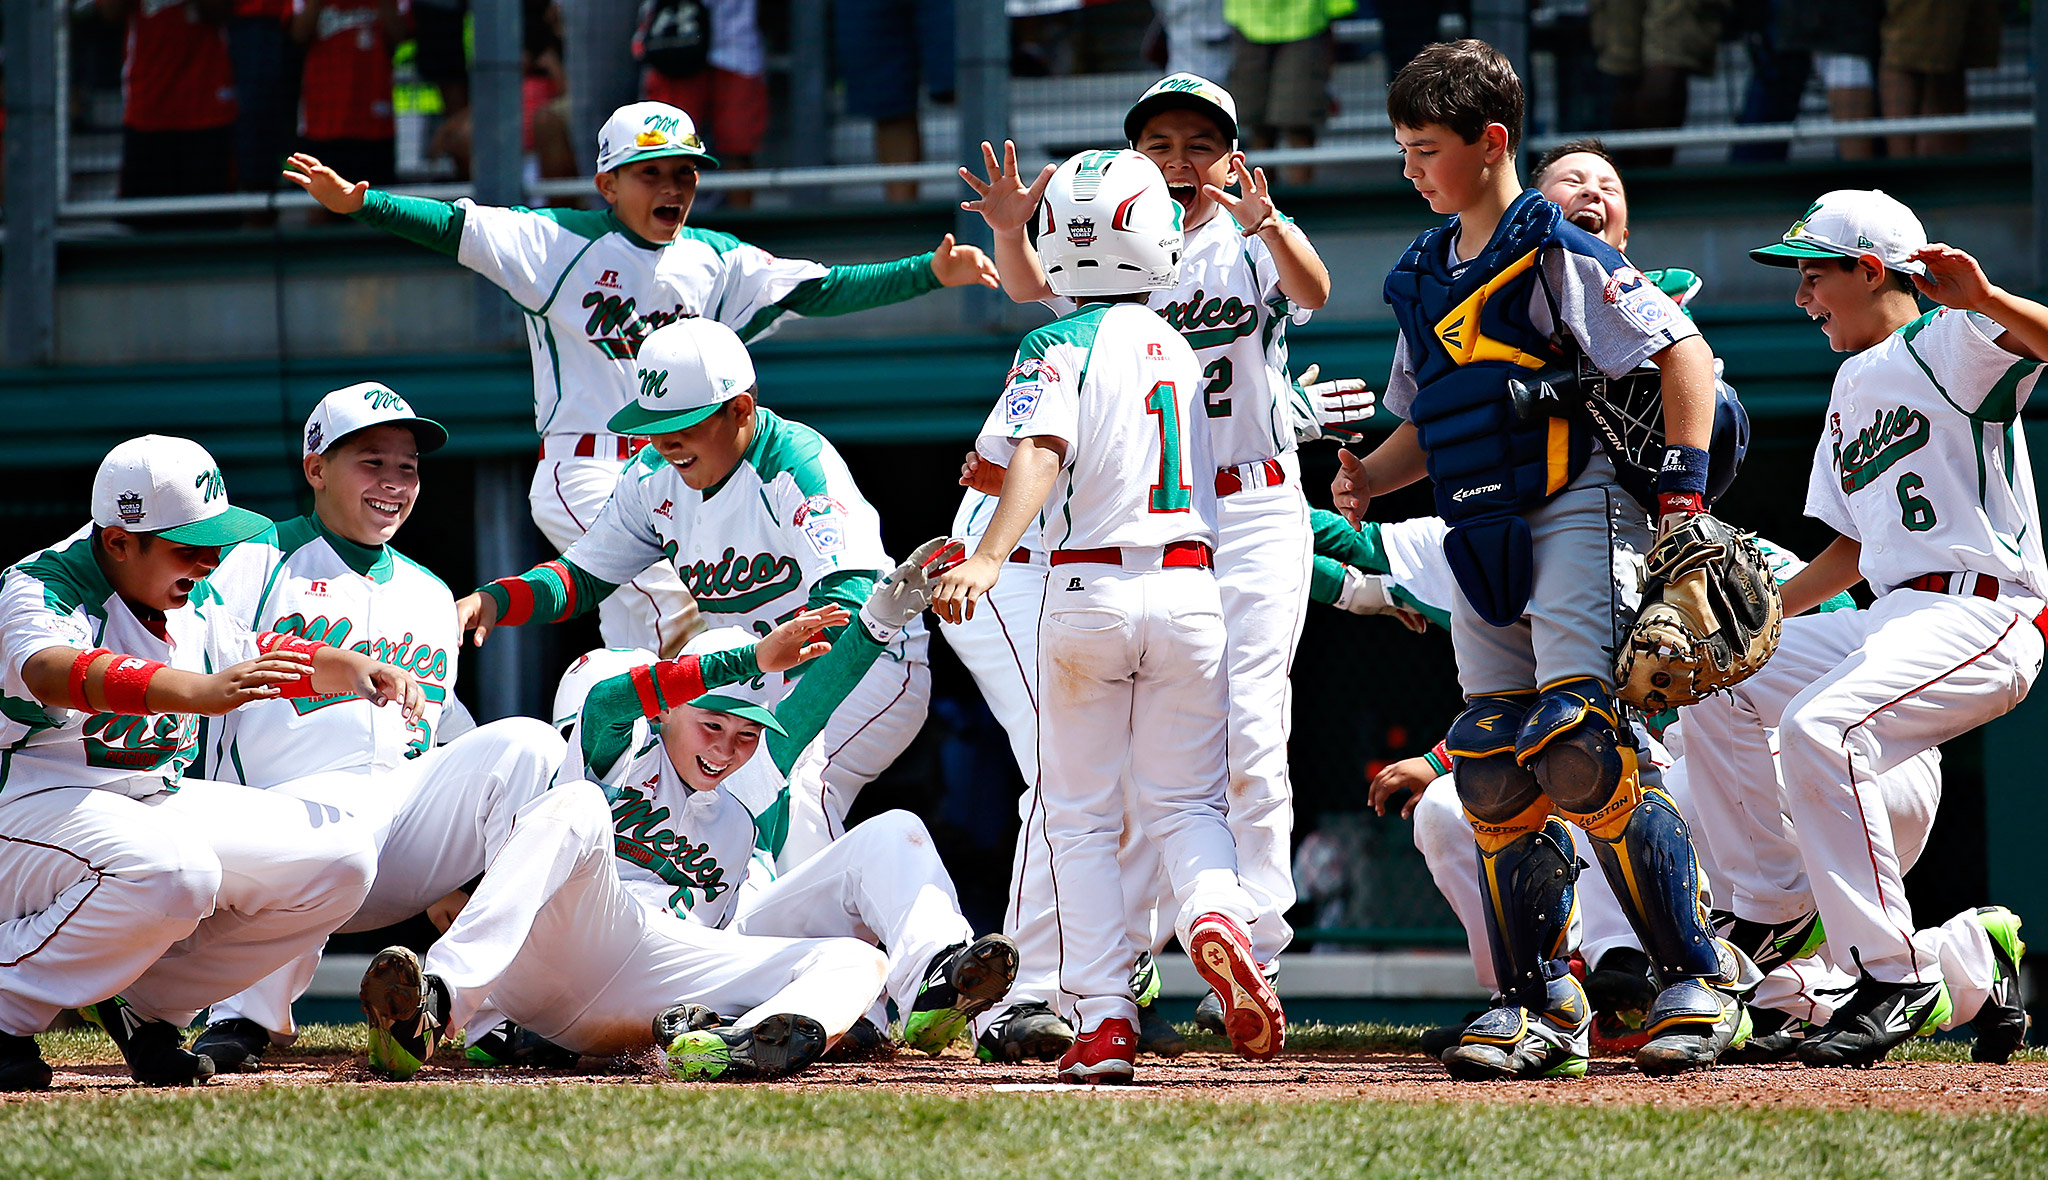 Mexico's Ruy Martinez, center, No. 1, got a hero's welcome from his teammates at home plate after homering against Australia.